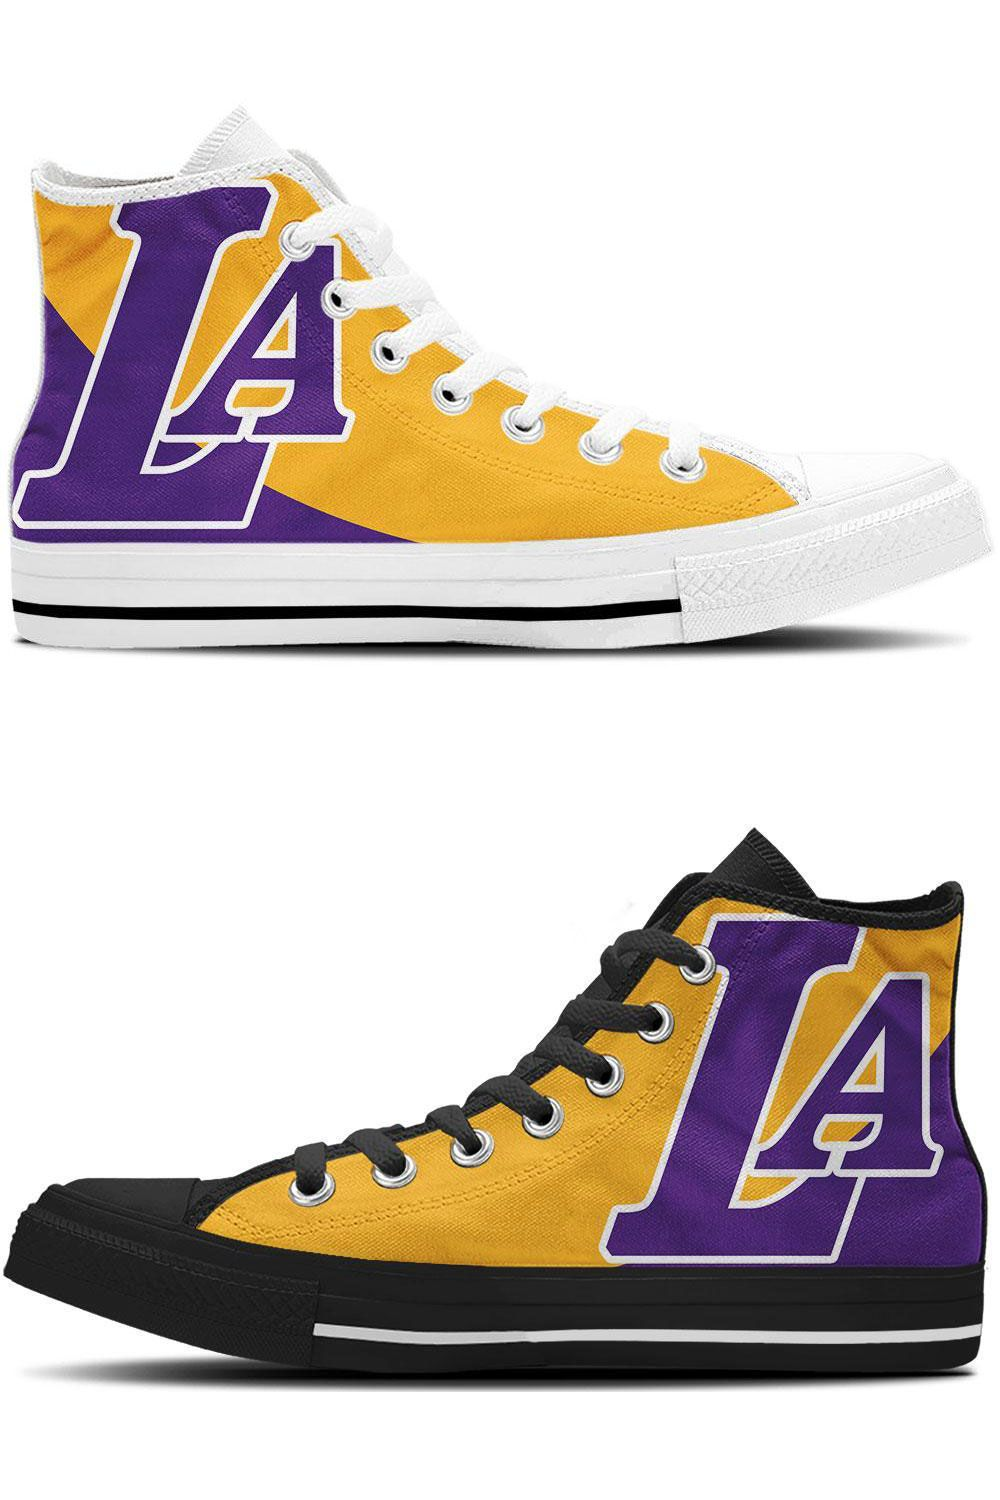 601214e316c6 Lakers Shoes - High Tops Sneakers Calling all LA Lakers fans! Show your  team pride with these amazing high top sneakers in the iconic LA colors.